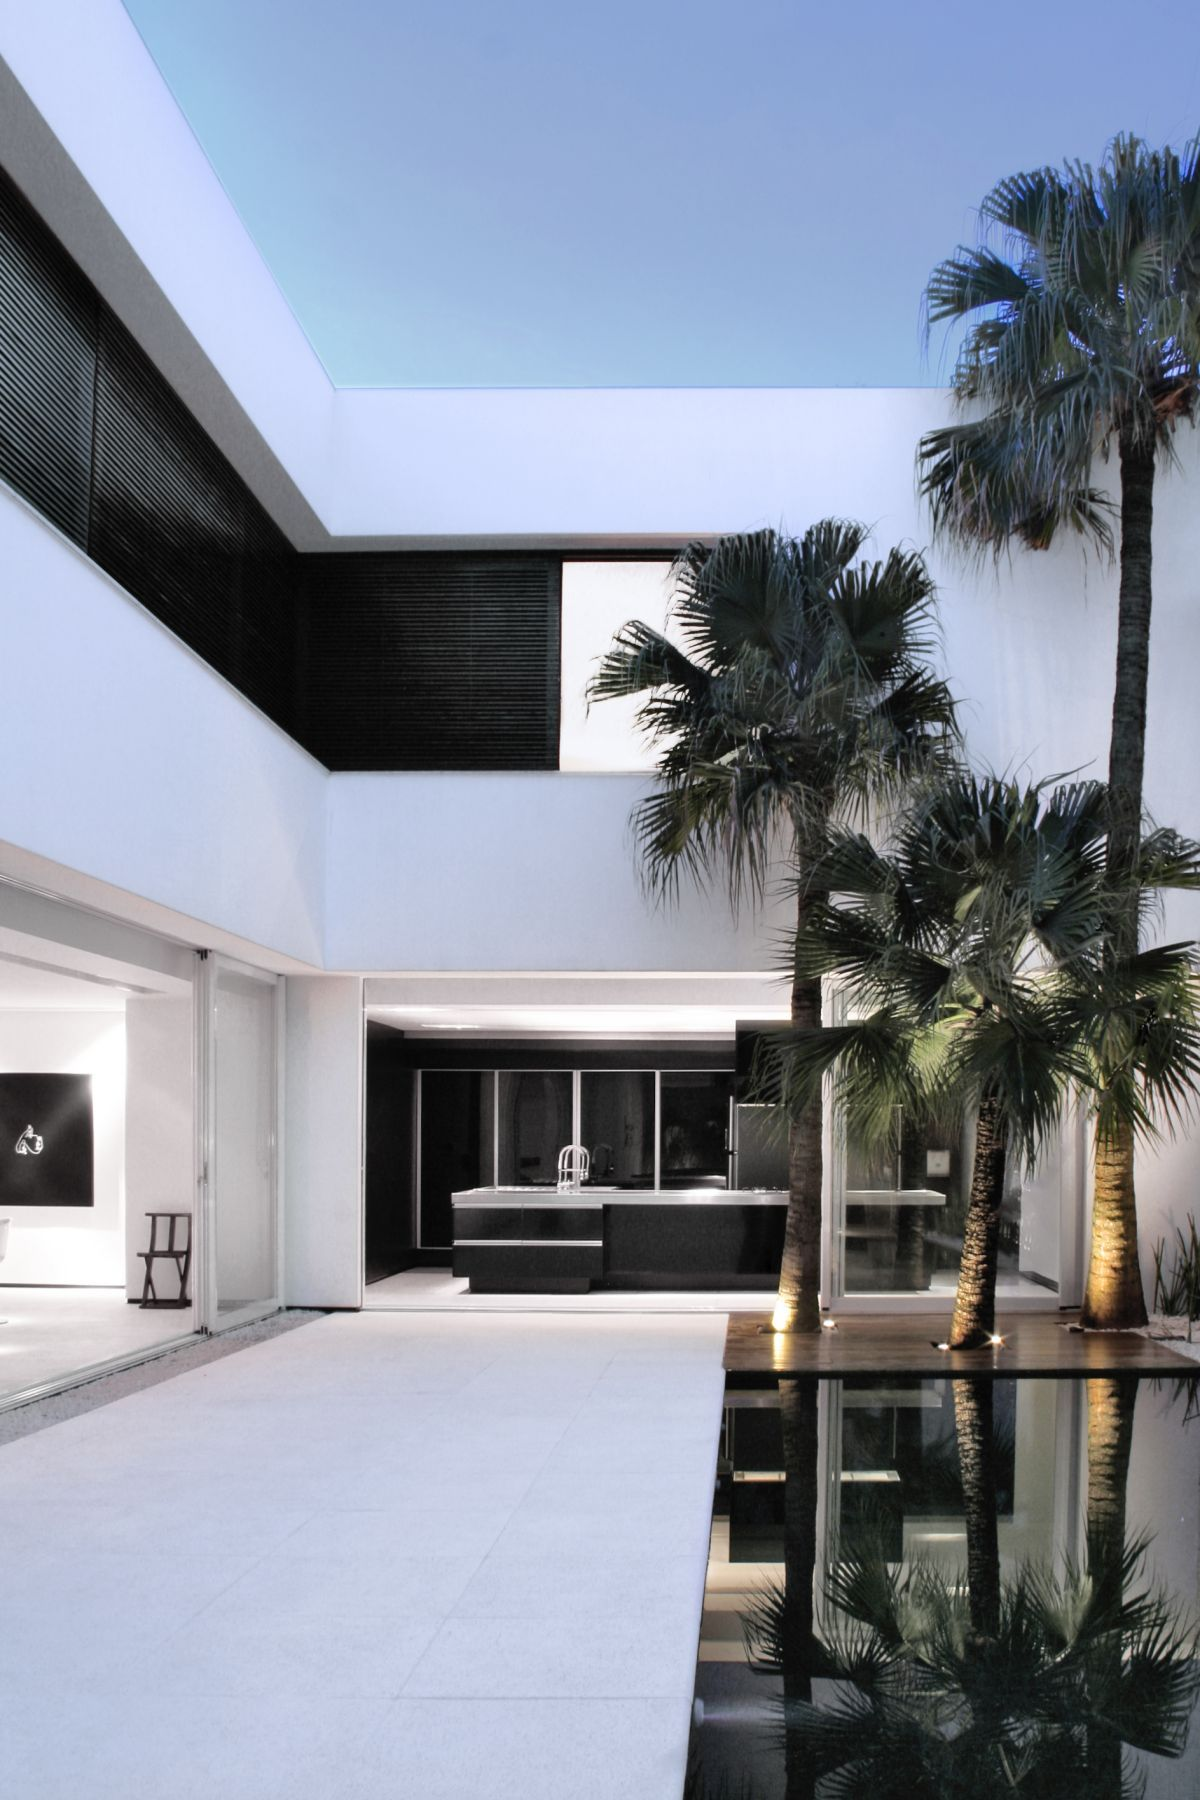 Minimalist Beverly Hills House By Finton Construction James Magni   Home  Design Projects Can Be Improved